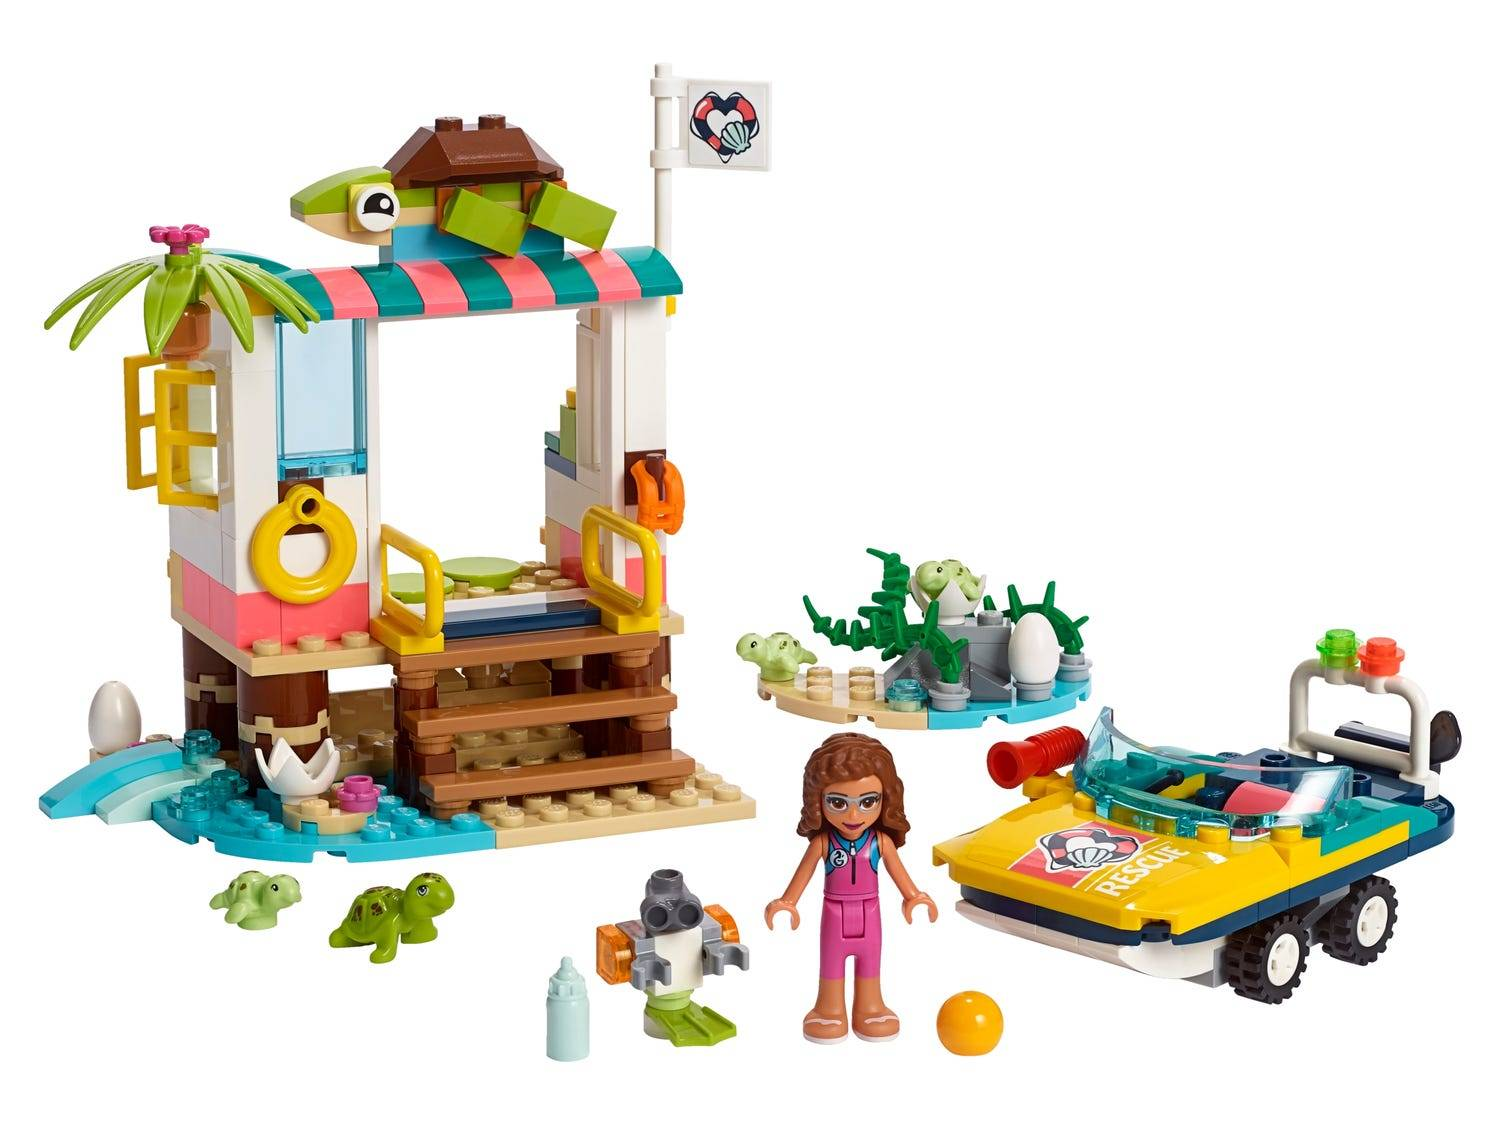 Lego Friends Turtles Rescue Mission